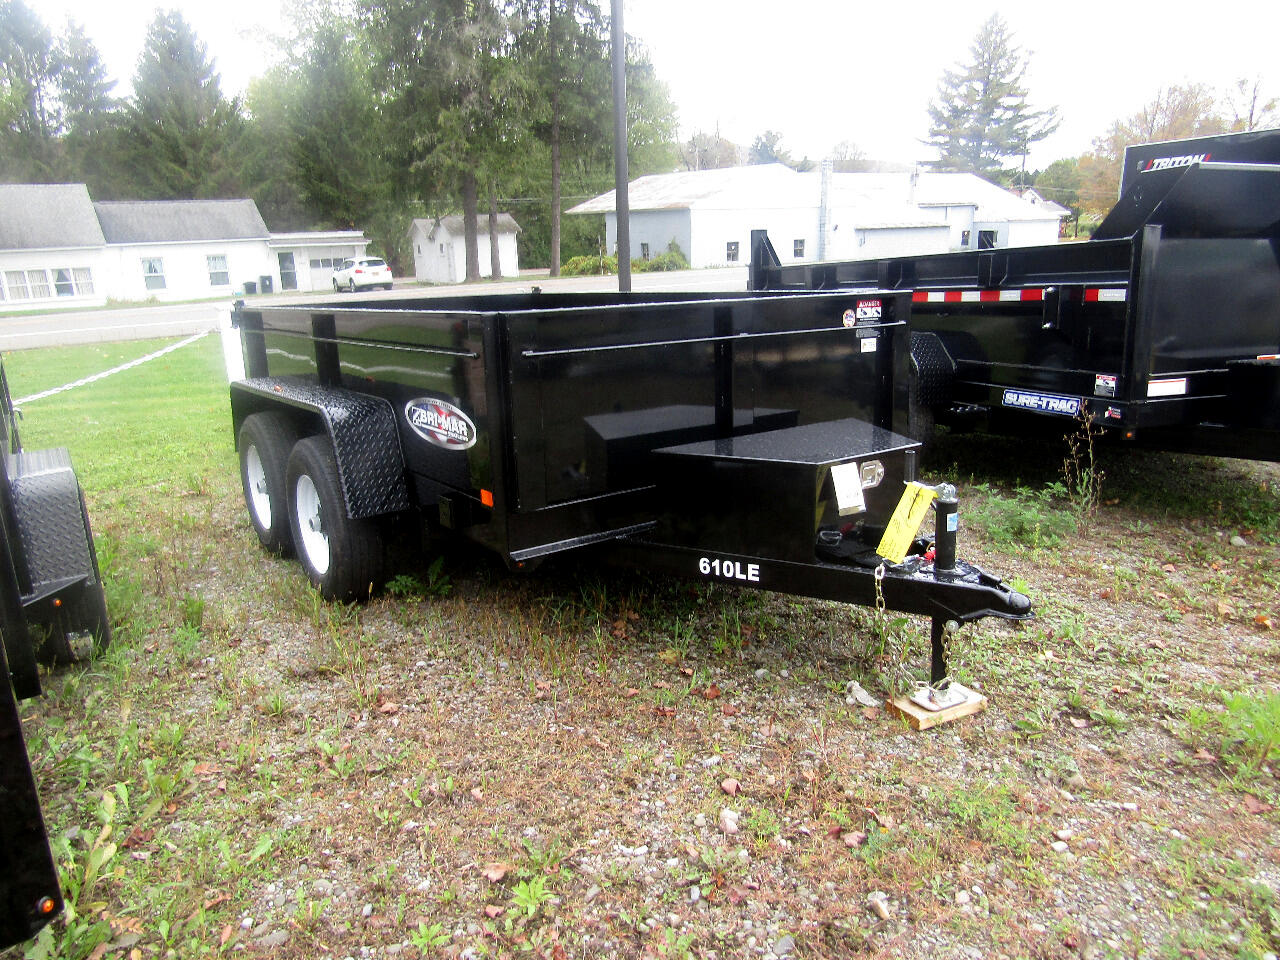 2020 Bri-Mar Low Profile Dump Trailer DT610LP-LE  6X10 DUMP WITH RAMPS   10K